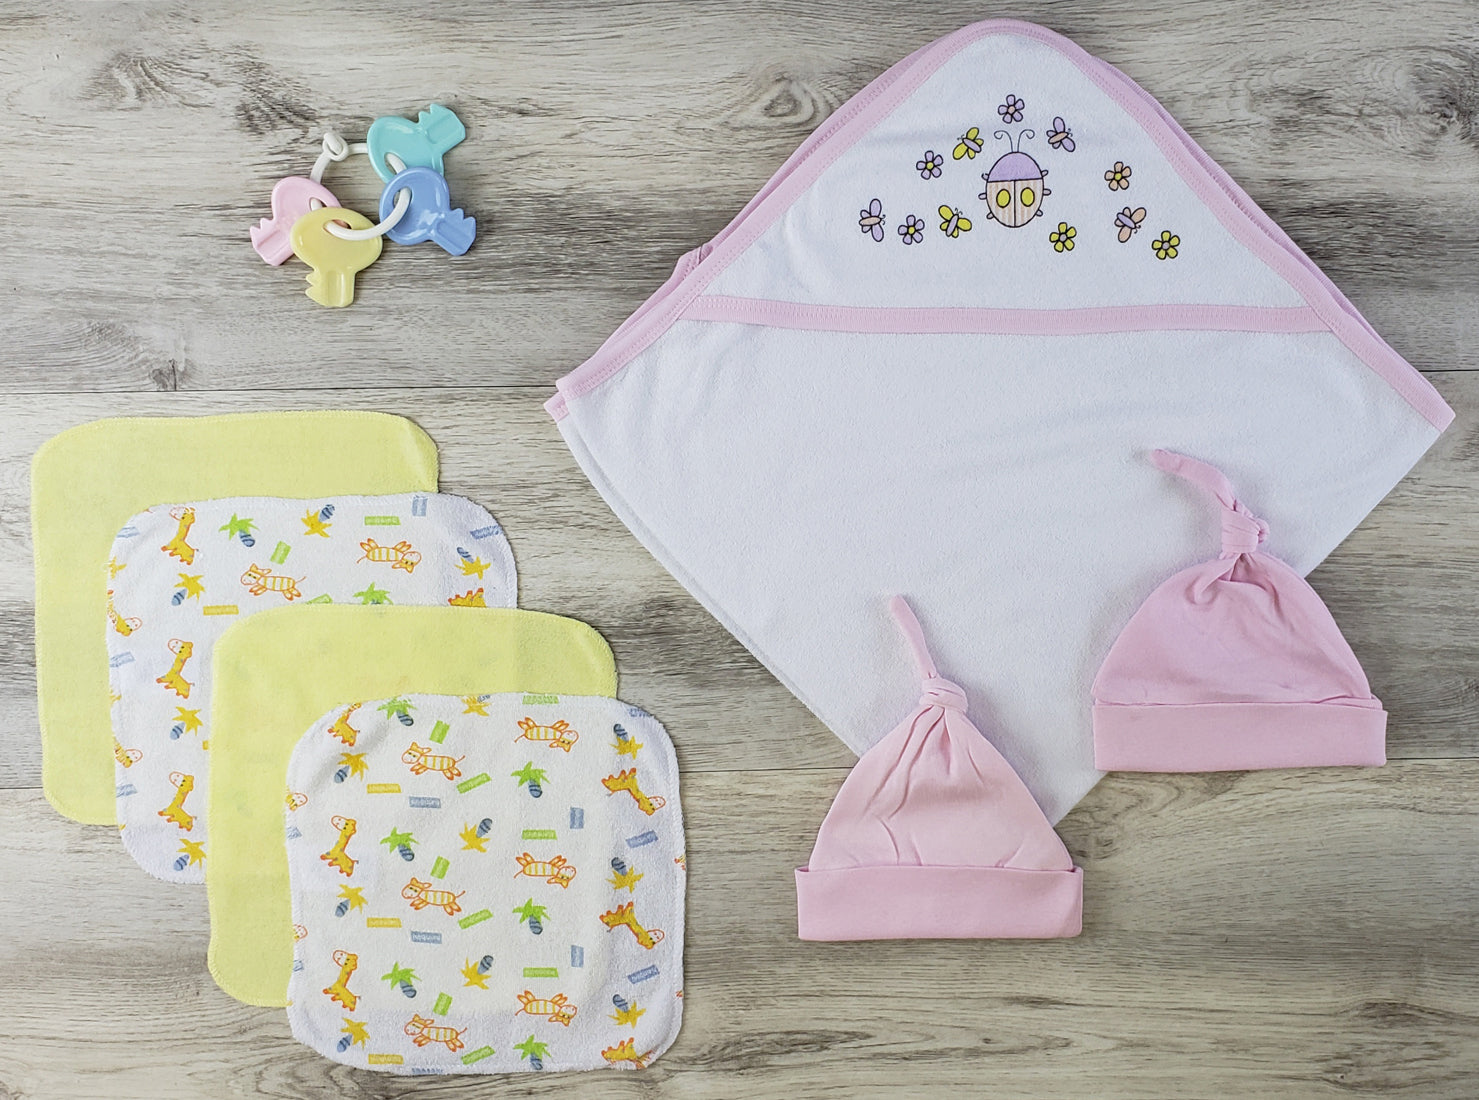 Bambini Hooded Towel, Hats and Wash Coths